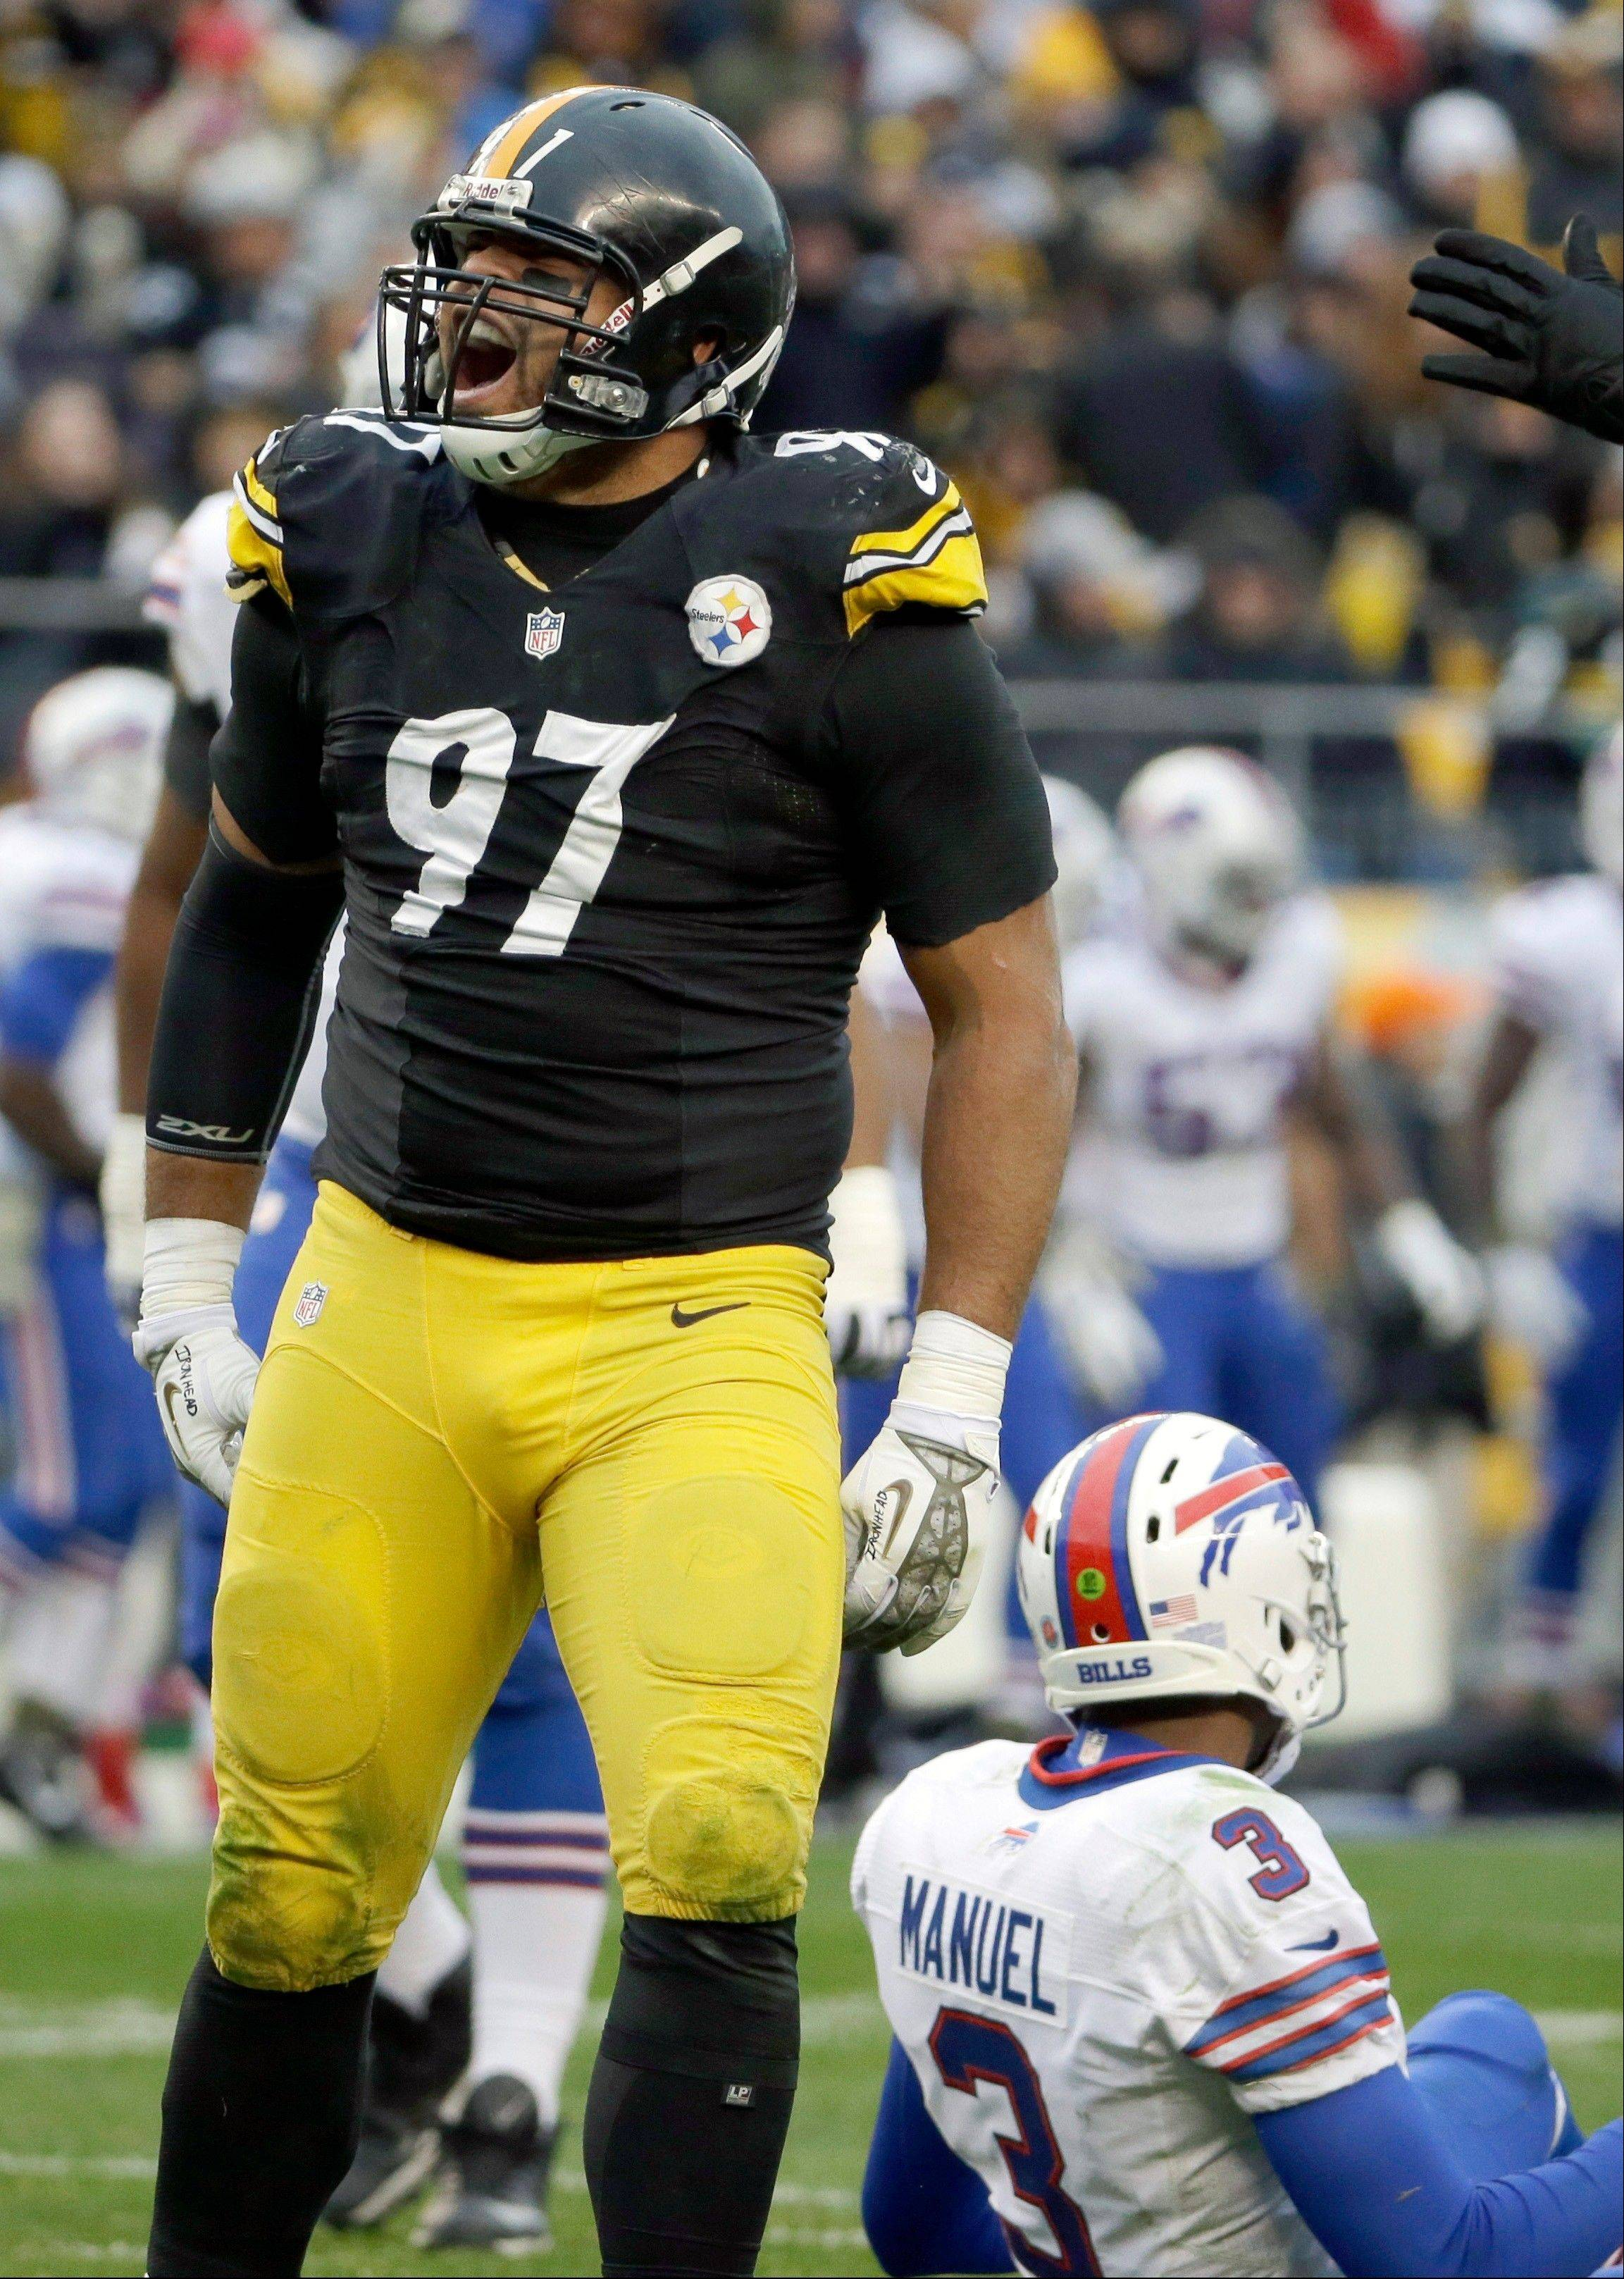 Pittsburgh Steelers' Cameron Heyward, left, reacts after tackling Buffalo Bills' EJ Manuel during the second half of an NFL football game on Sunday, Nov. 10, 2013, in Pittsburgh.